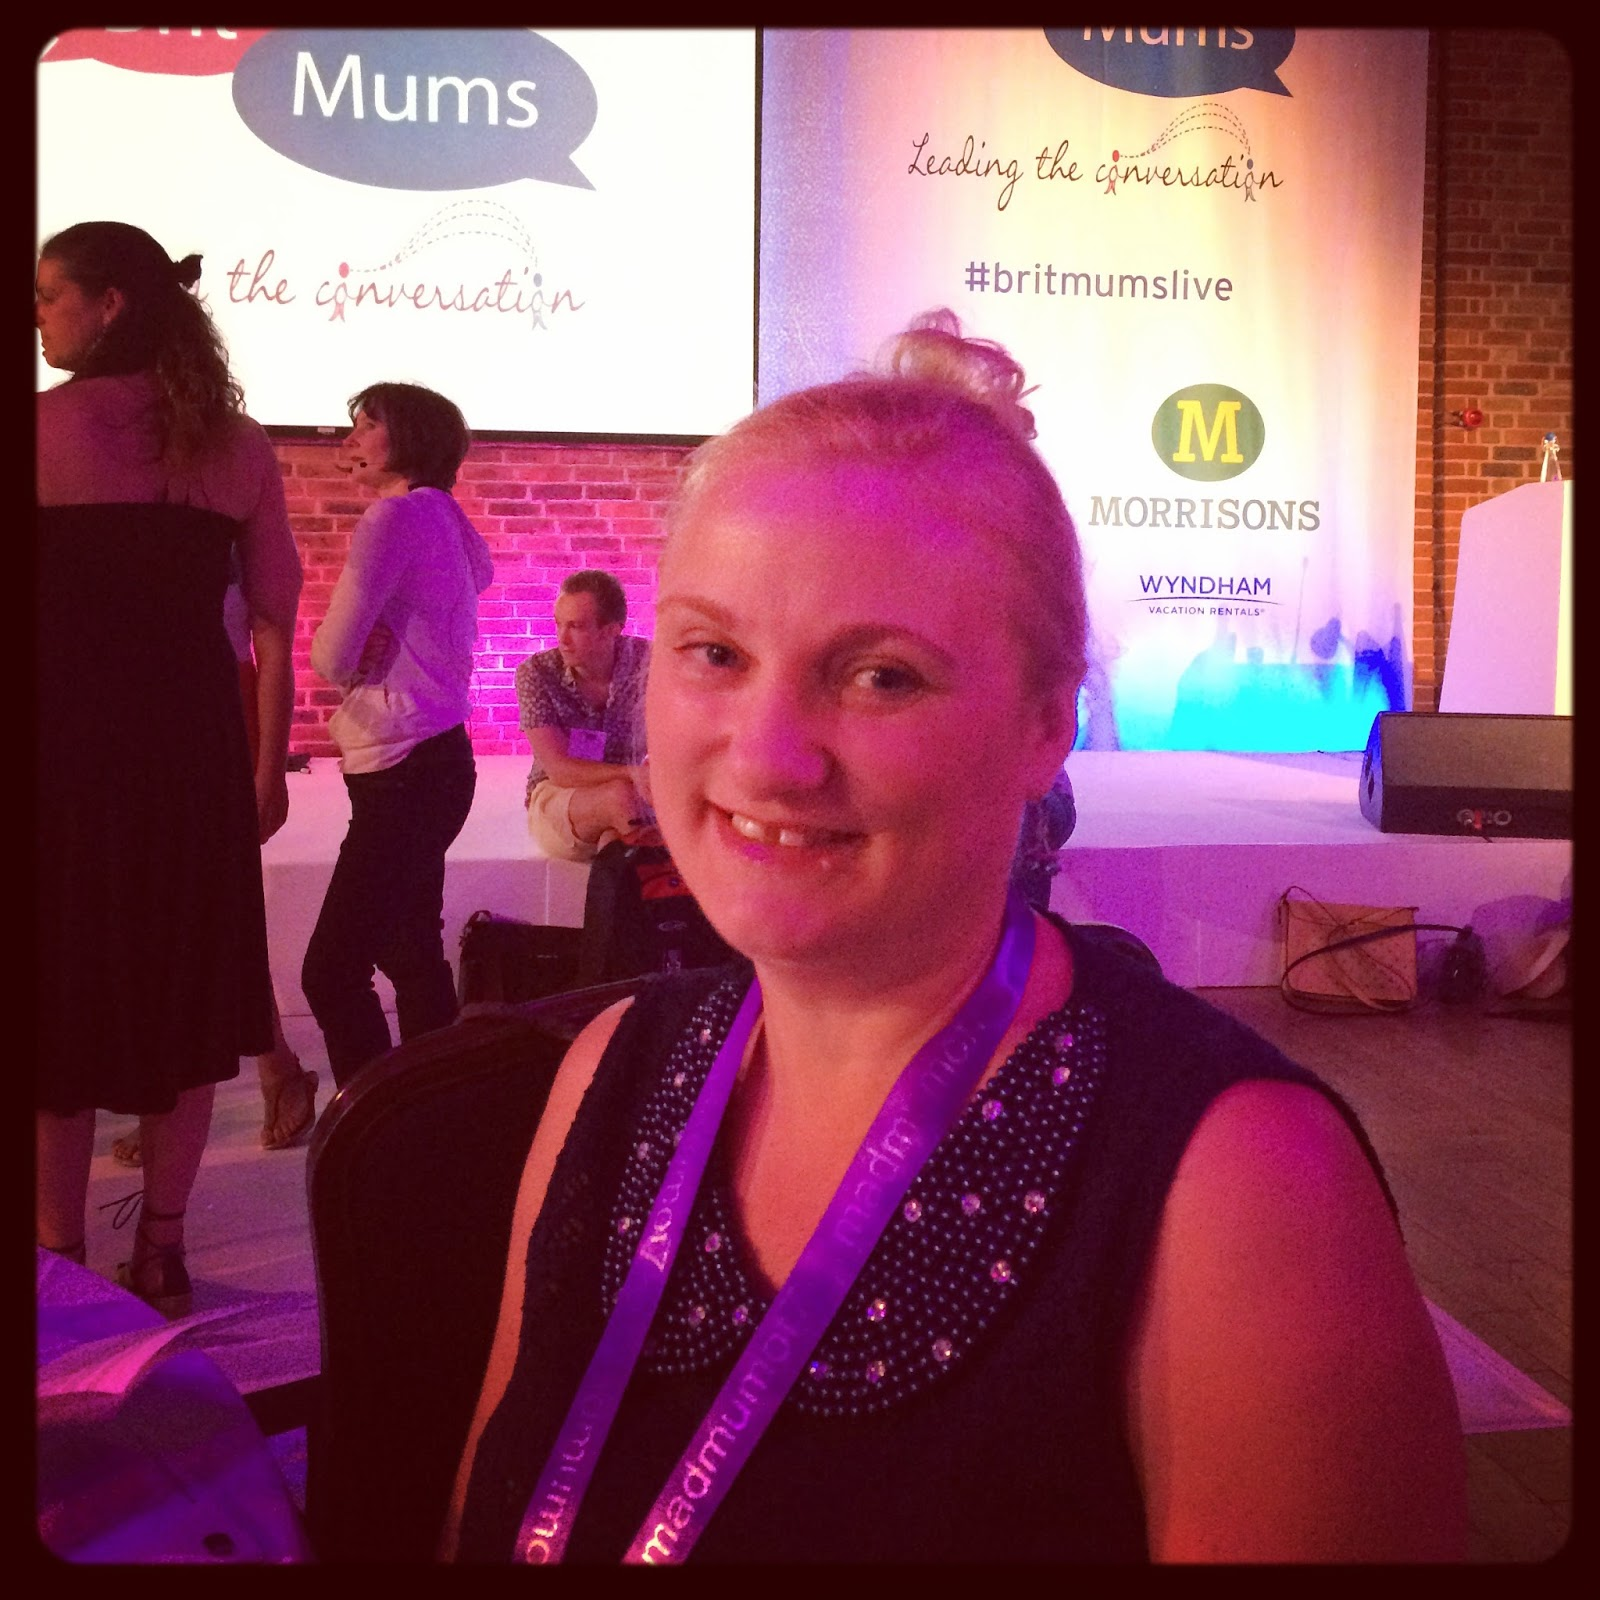 madmumof7 at #britmumslive